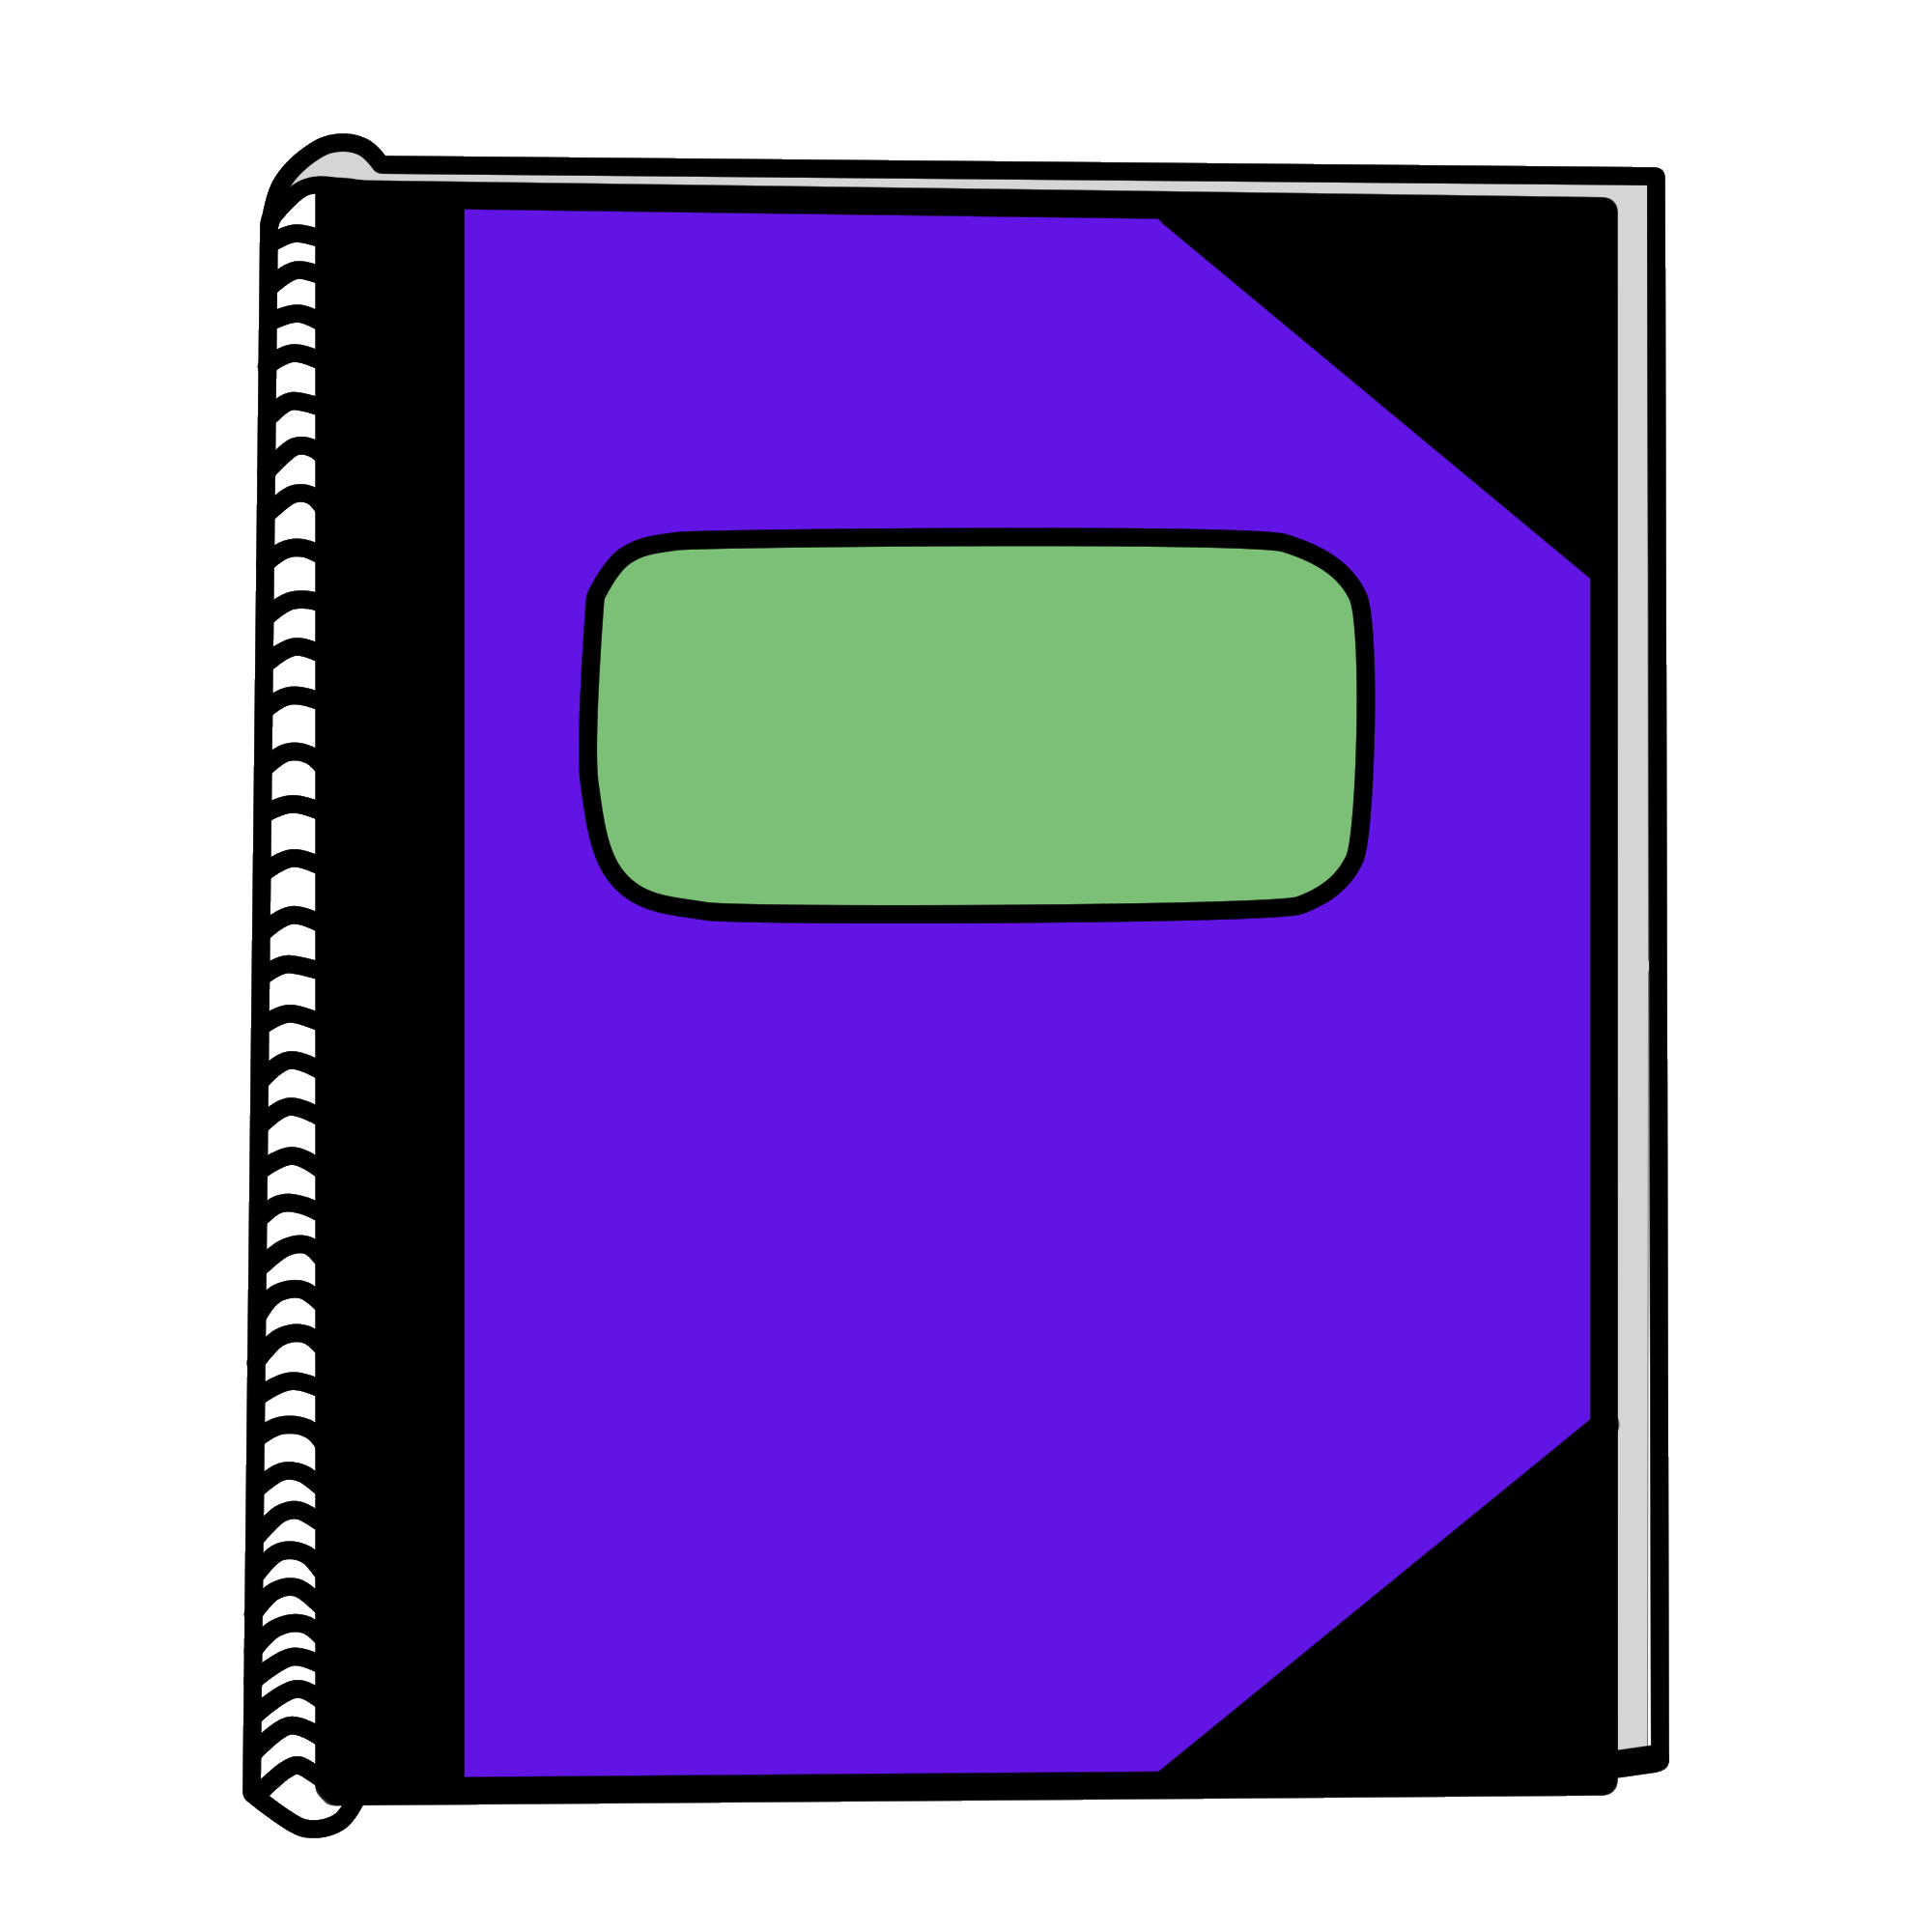 clip black and white library Violet clipart notebook. Image new png object